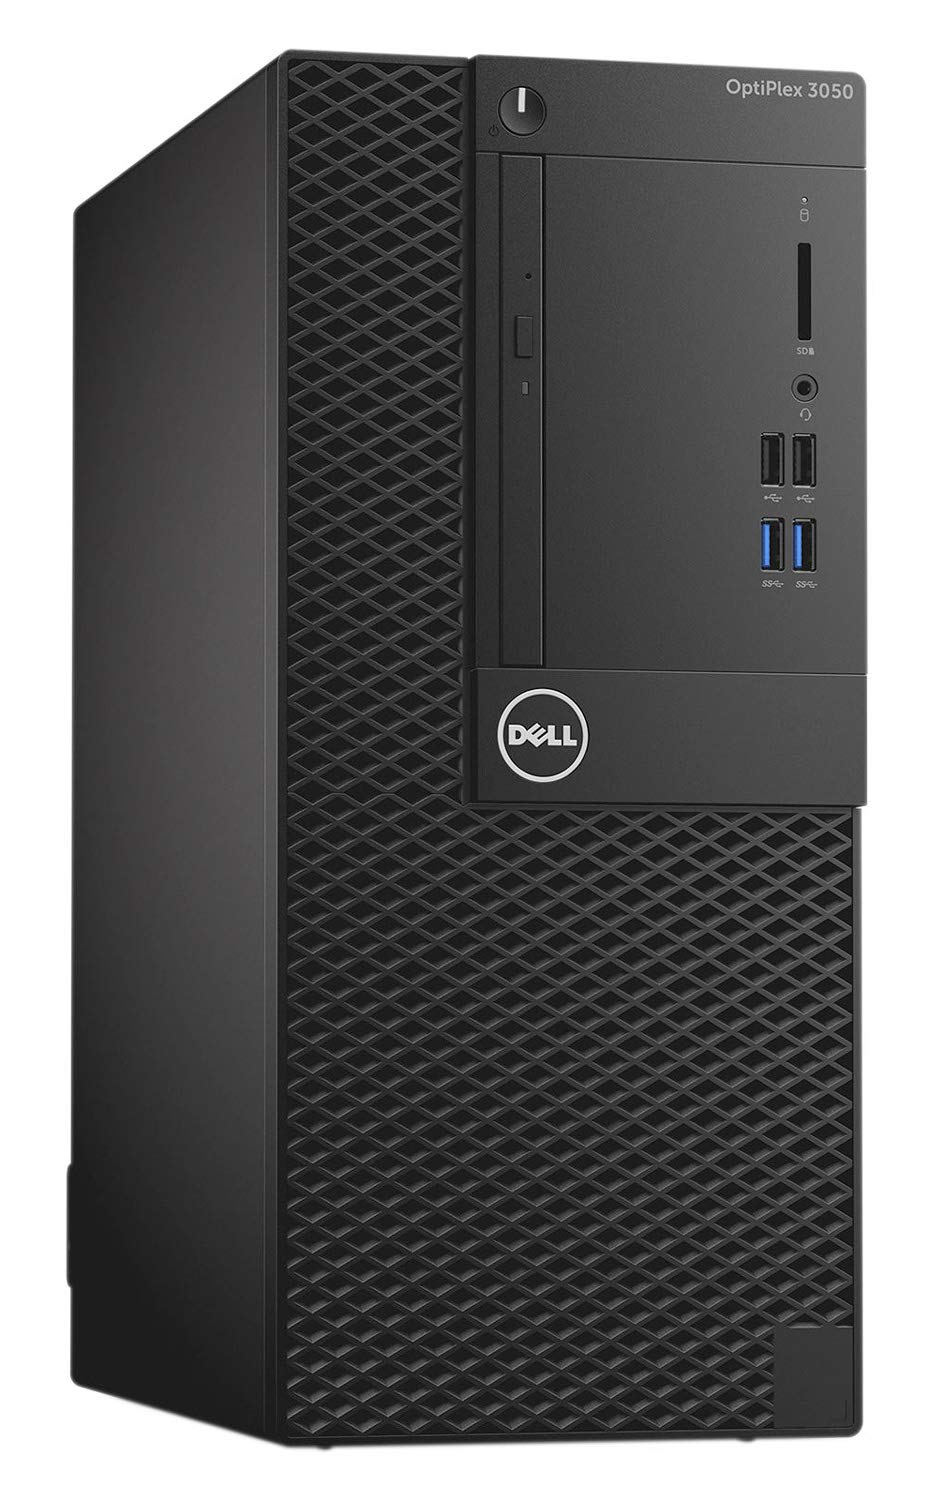 Dell OptiPlex 3050 3.4GHz i5-7500 Mini Tower 7ª generación de procesadores Intel® Core i5 Negro PC OptiPlex 3050, 3,4 GHz, 7ª generación de procesadores Intel® Core i5, 8 GB, 1000